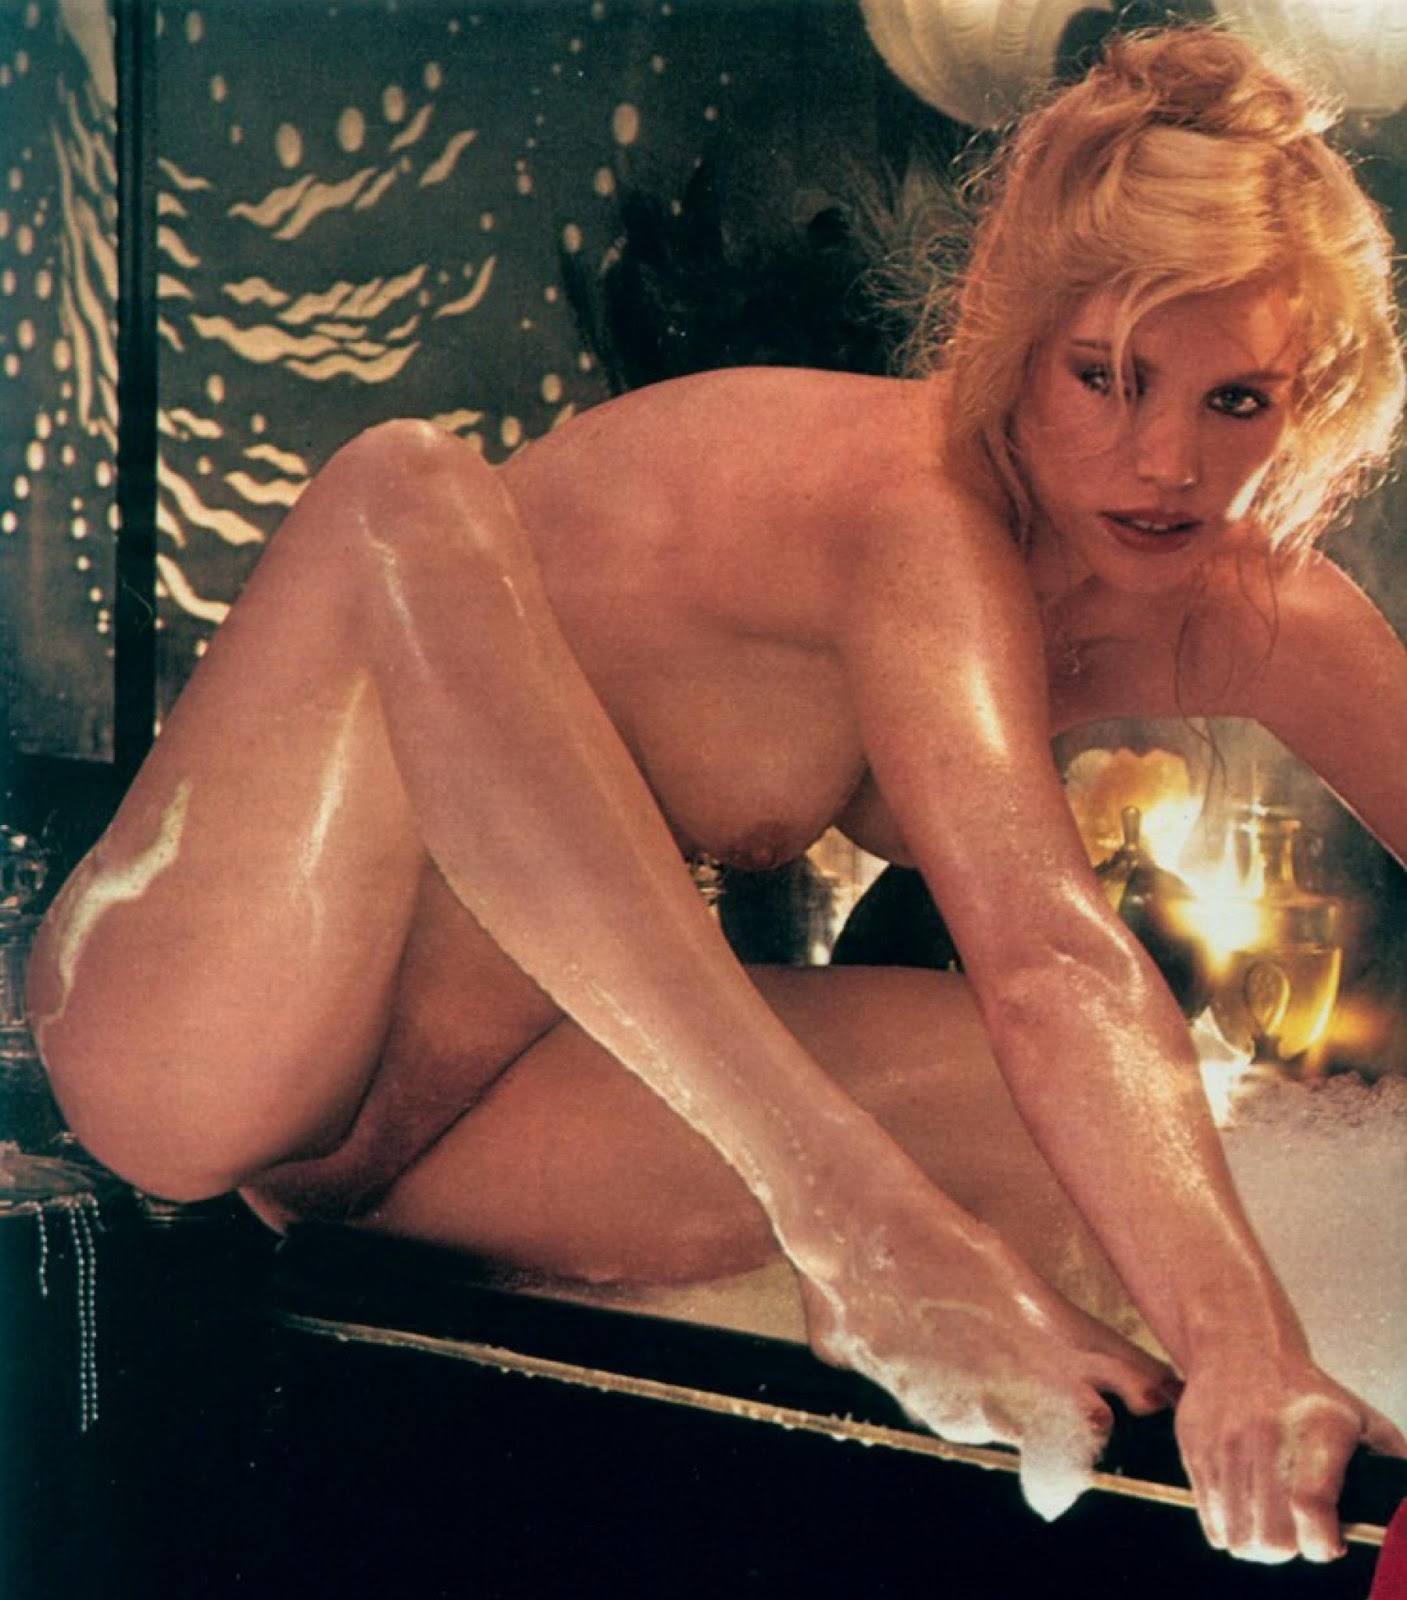 Shannon tweed and porn